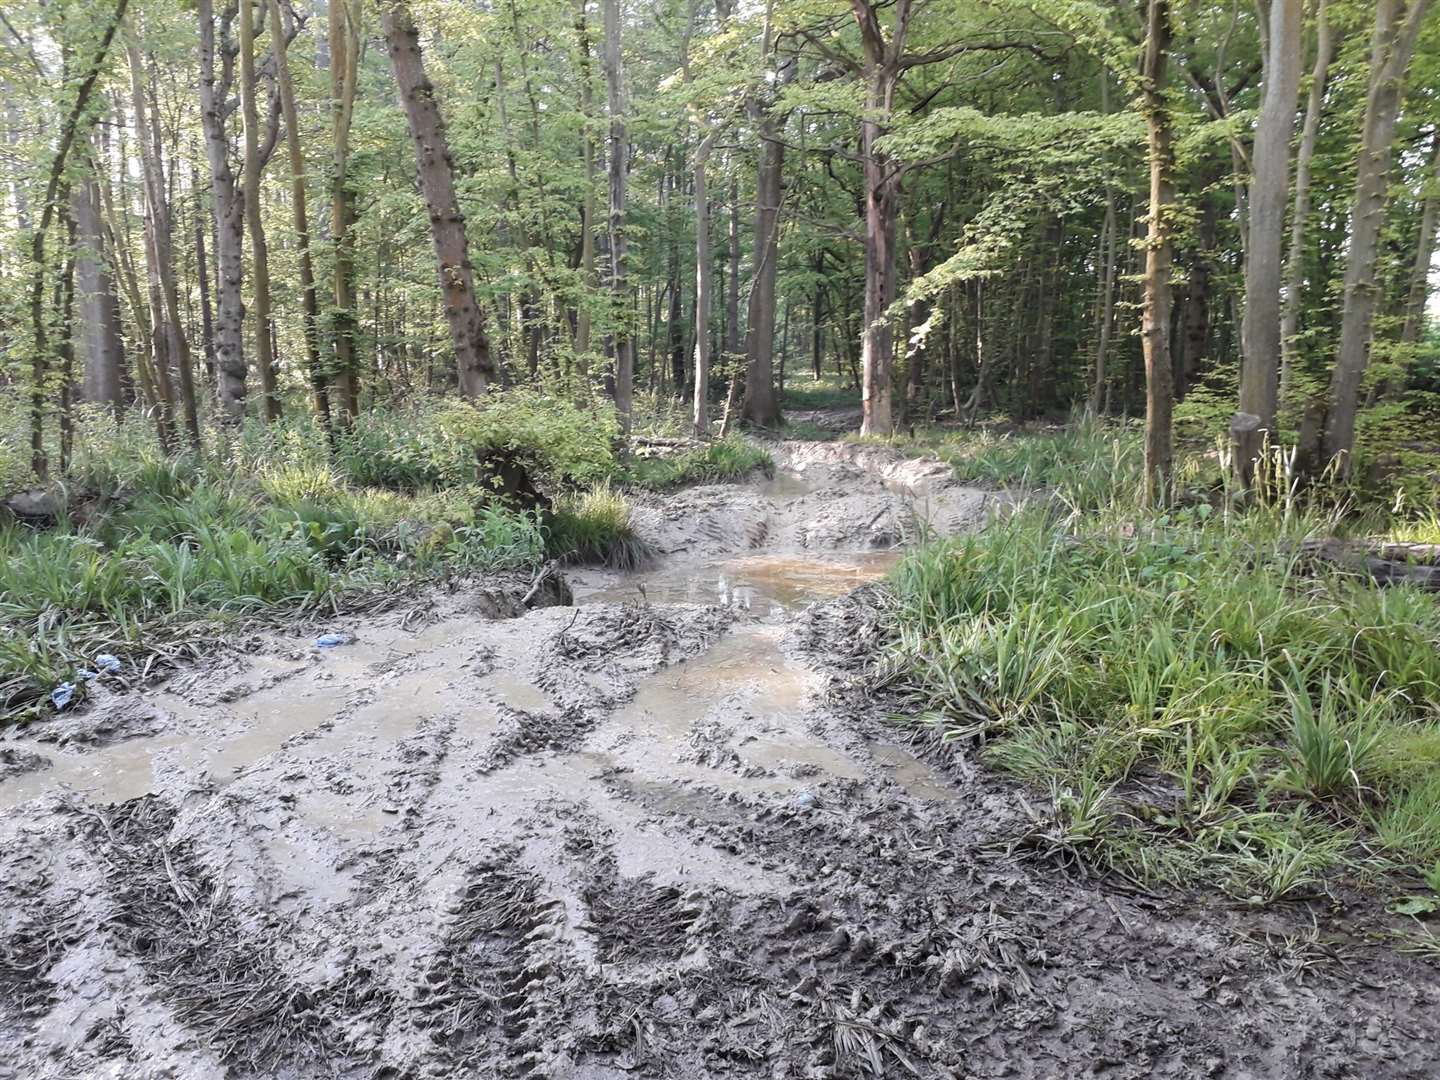 Vehicles driving through Hamstreet's woodland have caused damaged to the track